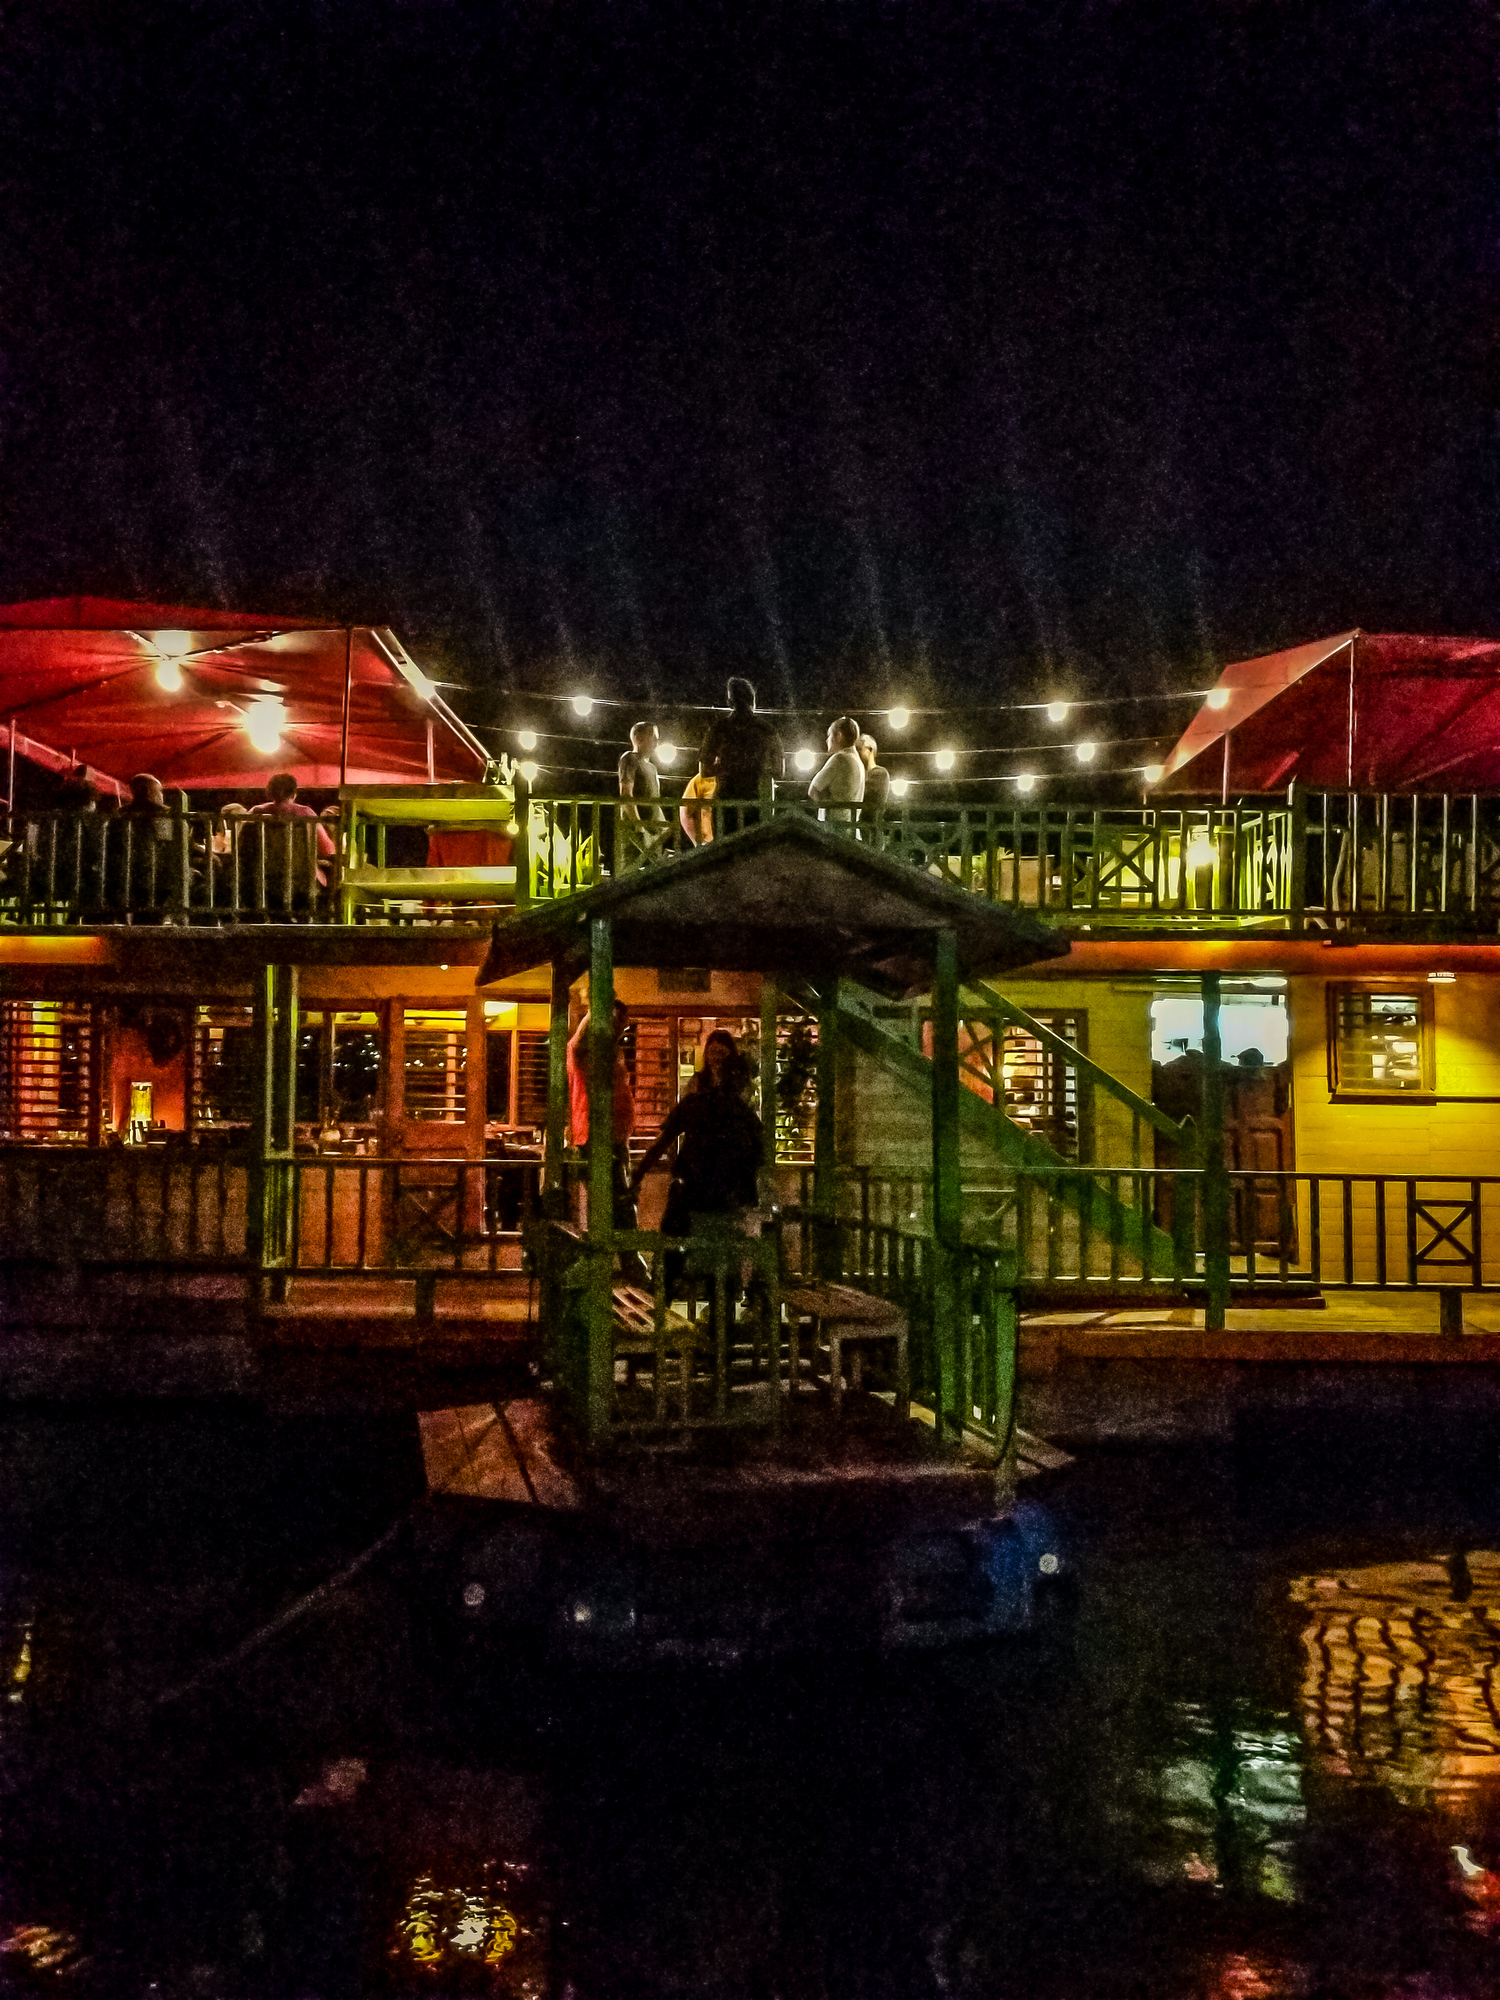 Wondering where to eat in Montego Bay? The HouseBoat Grill is one of the most unique and popular spots on the island.